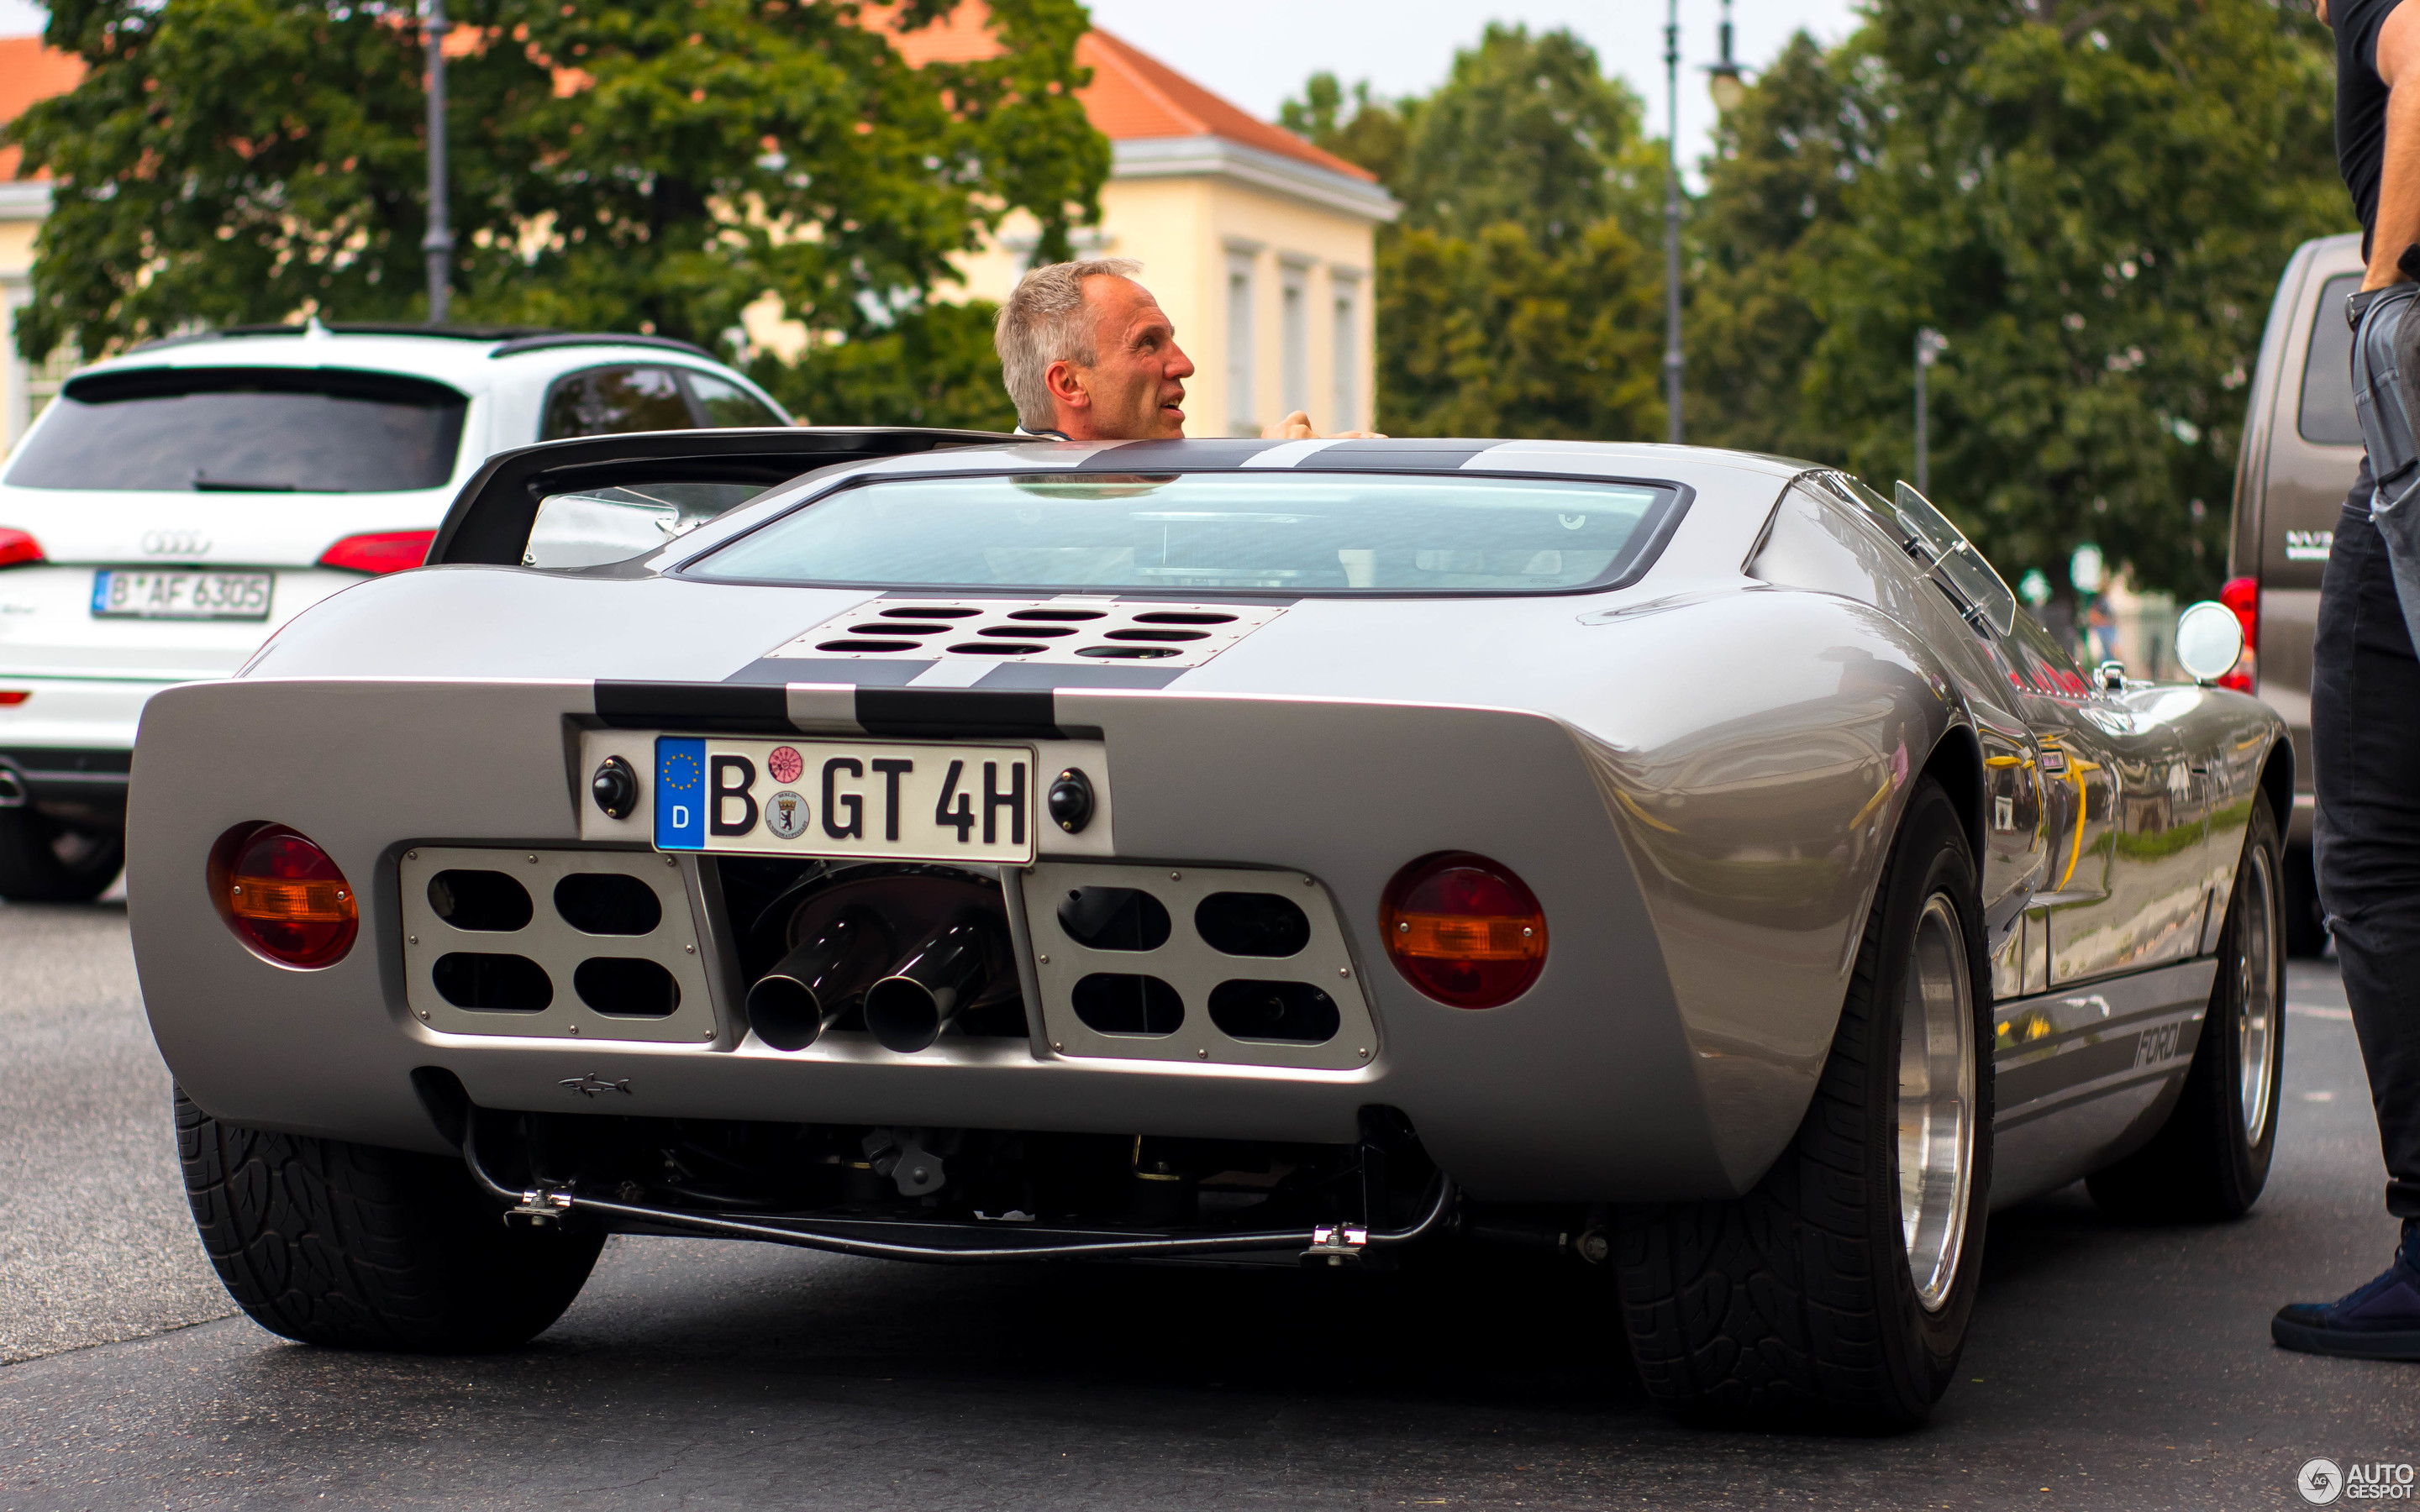 Ford GT 40 - 26 August 2017 - Auspot Ford Gt Zu Verkaufen on ford gt40 at le mans, ford gt40 mk3, ford gt40 red, ford focus, ford gt40 mark ii, ford gt40 concept, ford galaxie, ford mach 40, ford gtx1, ford gt90, ford pantera, ford cobra, ford gt40 mk1, ford daytona coupe, ford gt40 interior, ford gtr, ford gt40 top speed, ford mustang, ford thunderbird, ford raptor,